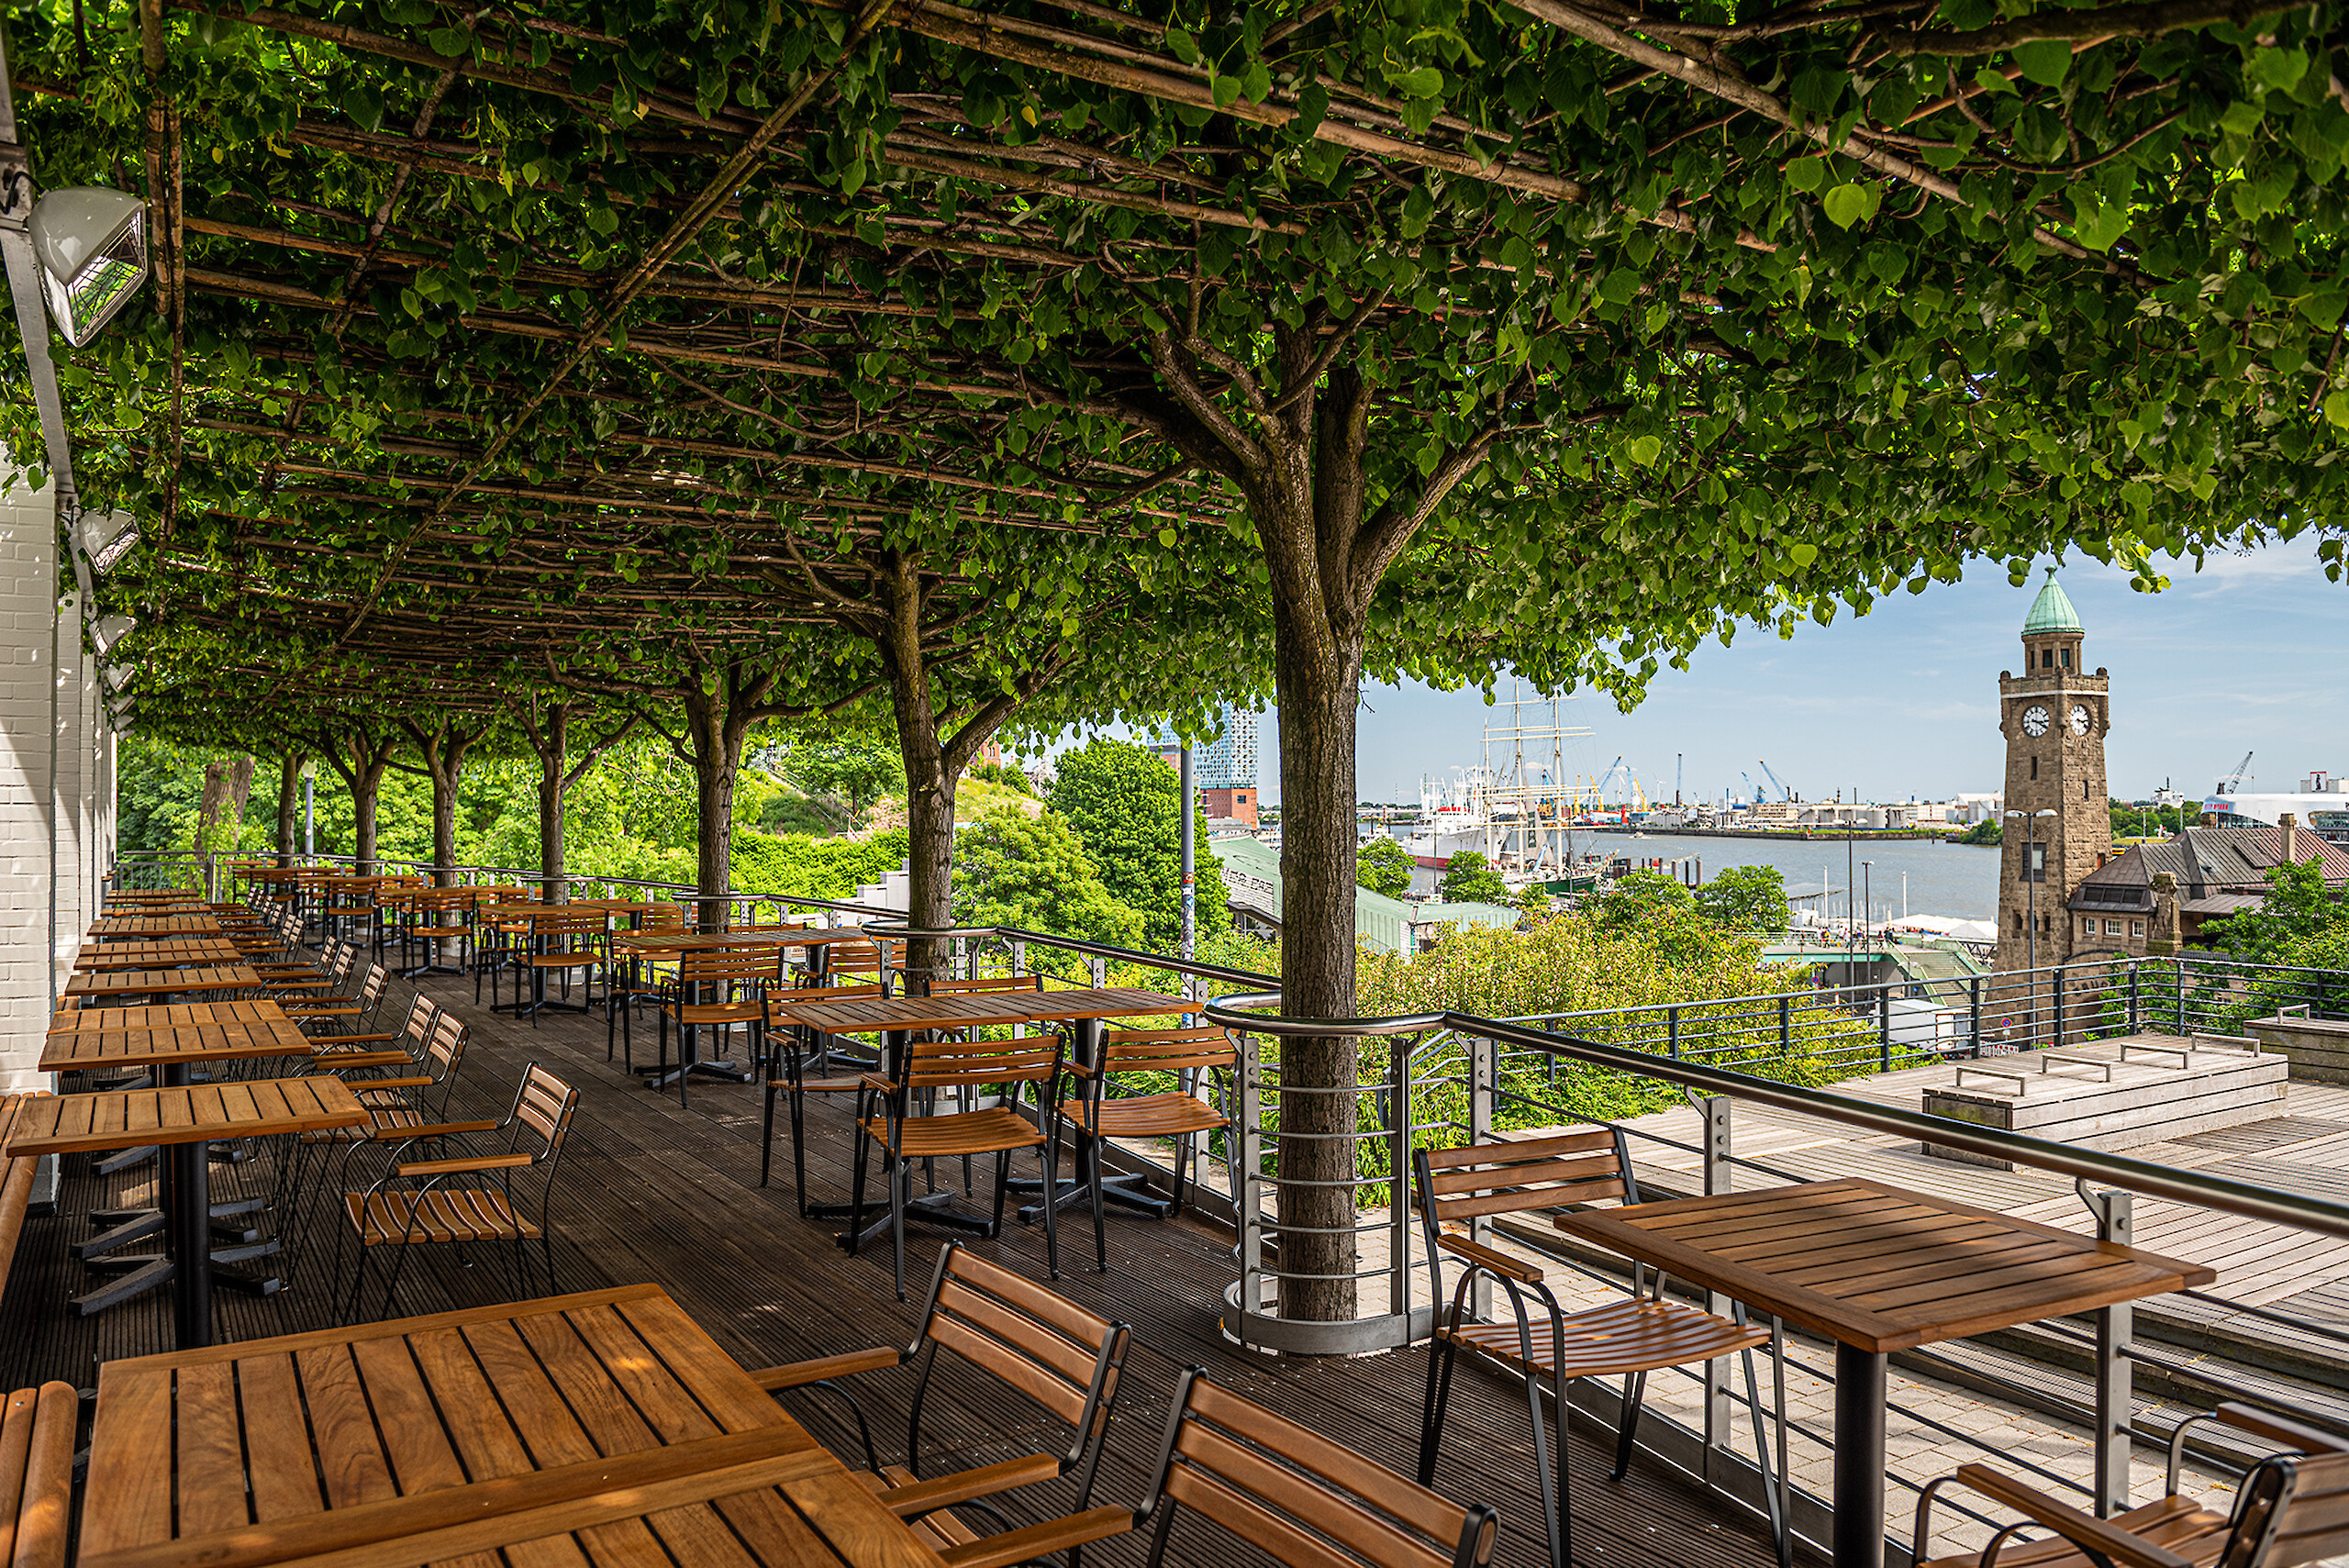 The treetop-covered terrace of the Port Restaurant with a view across the harbor